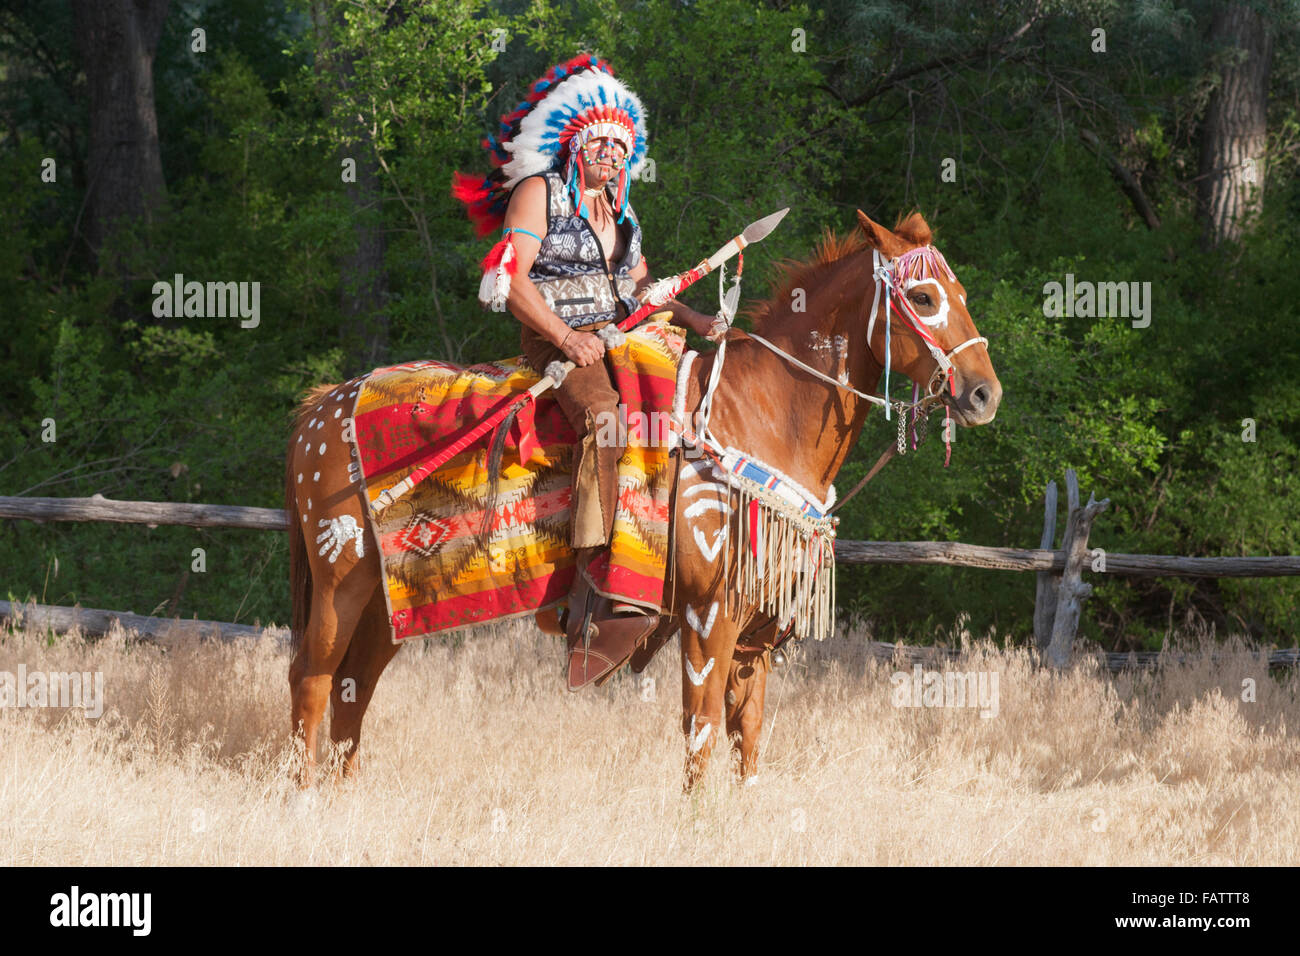 Indian Rider High Resolution Stock Photography And Images Alamy